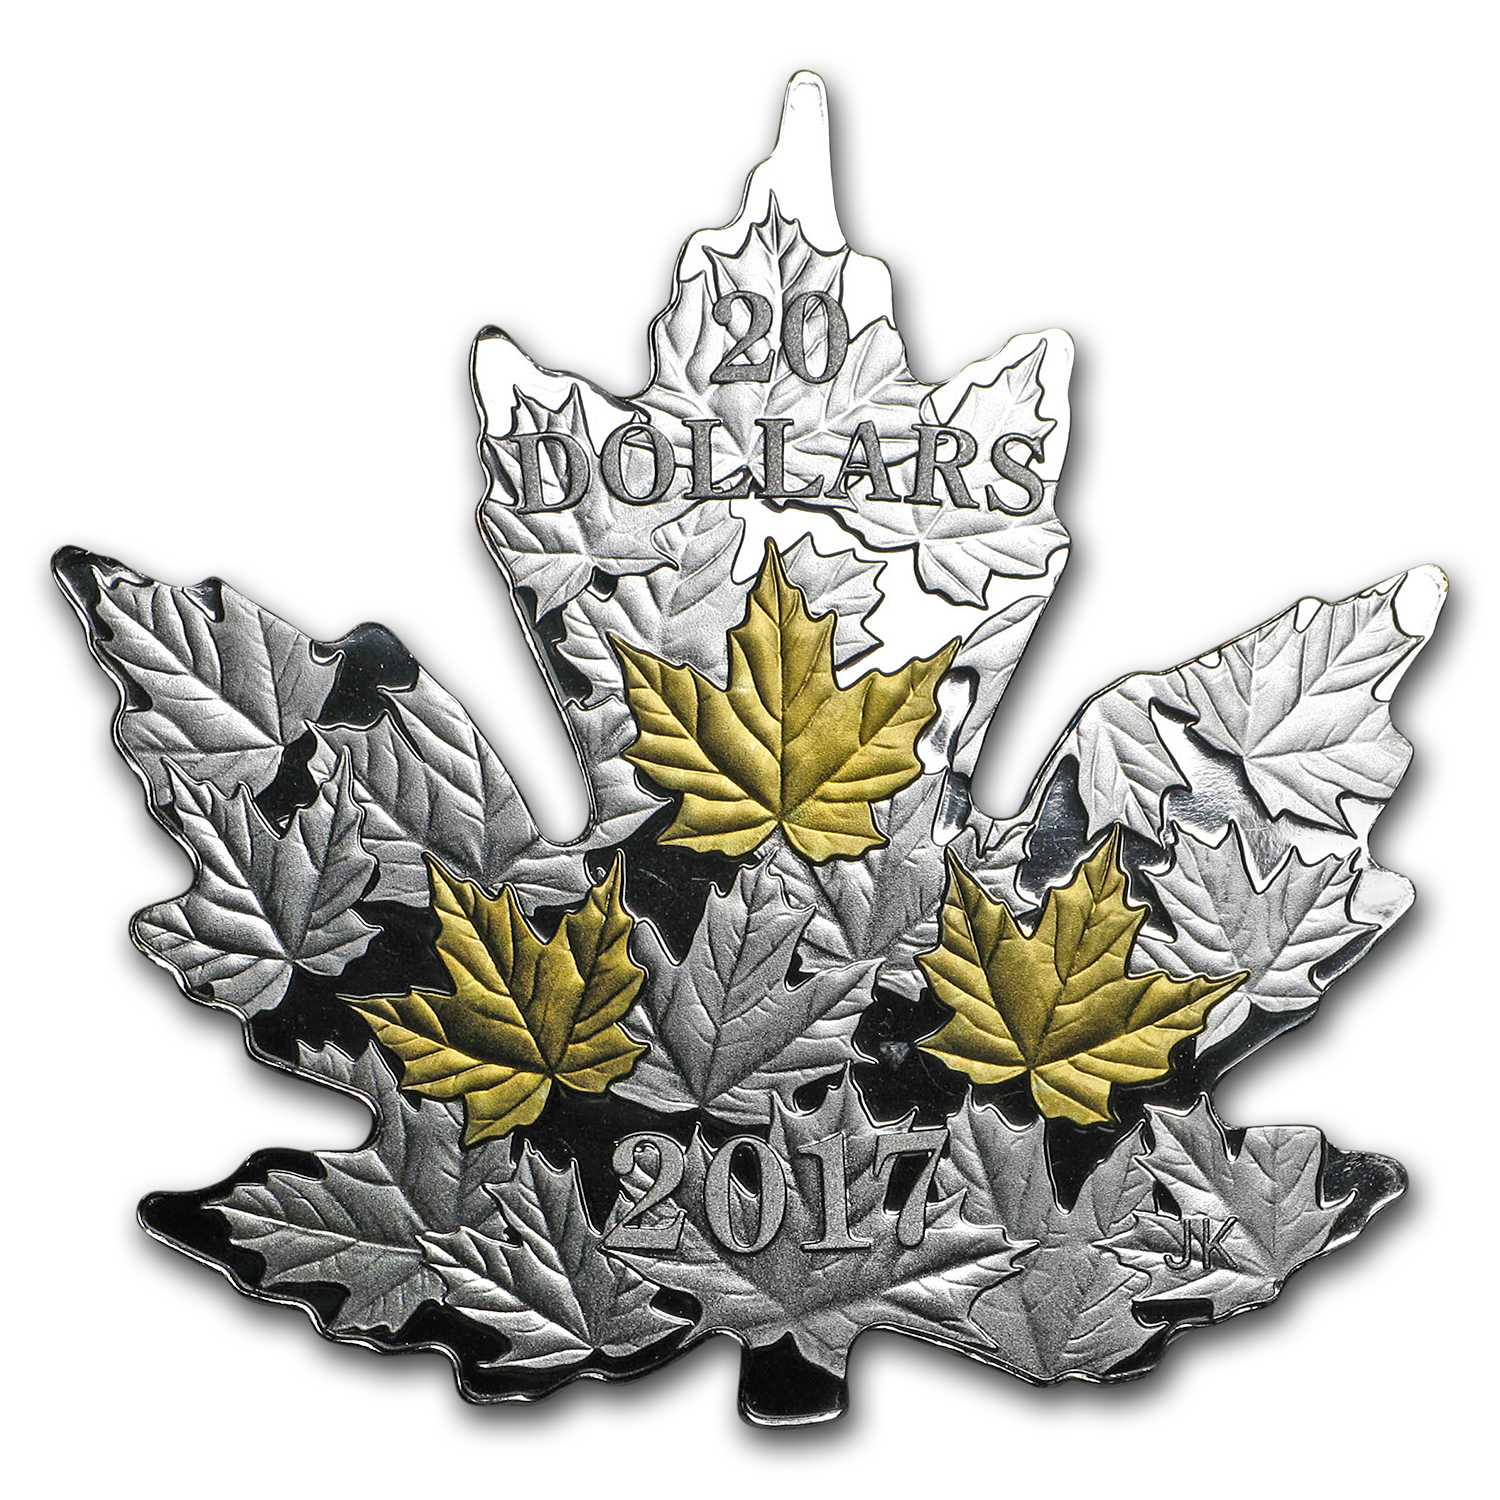 2017 Canada 1 oz Silver $20 Gilded Silver Maple Leaf